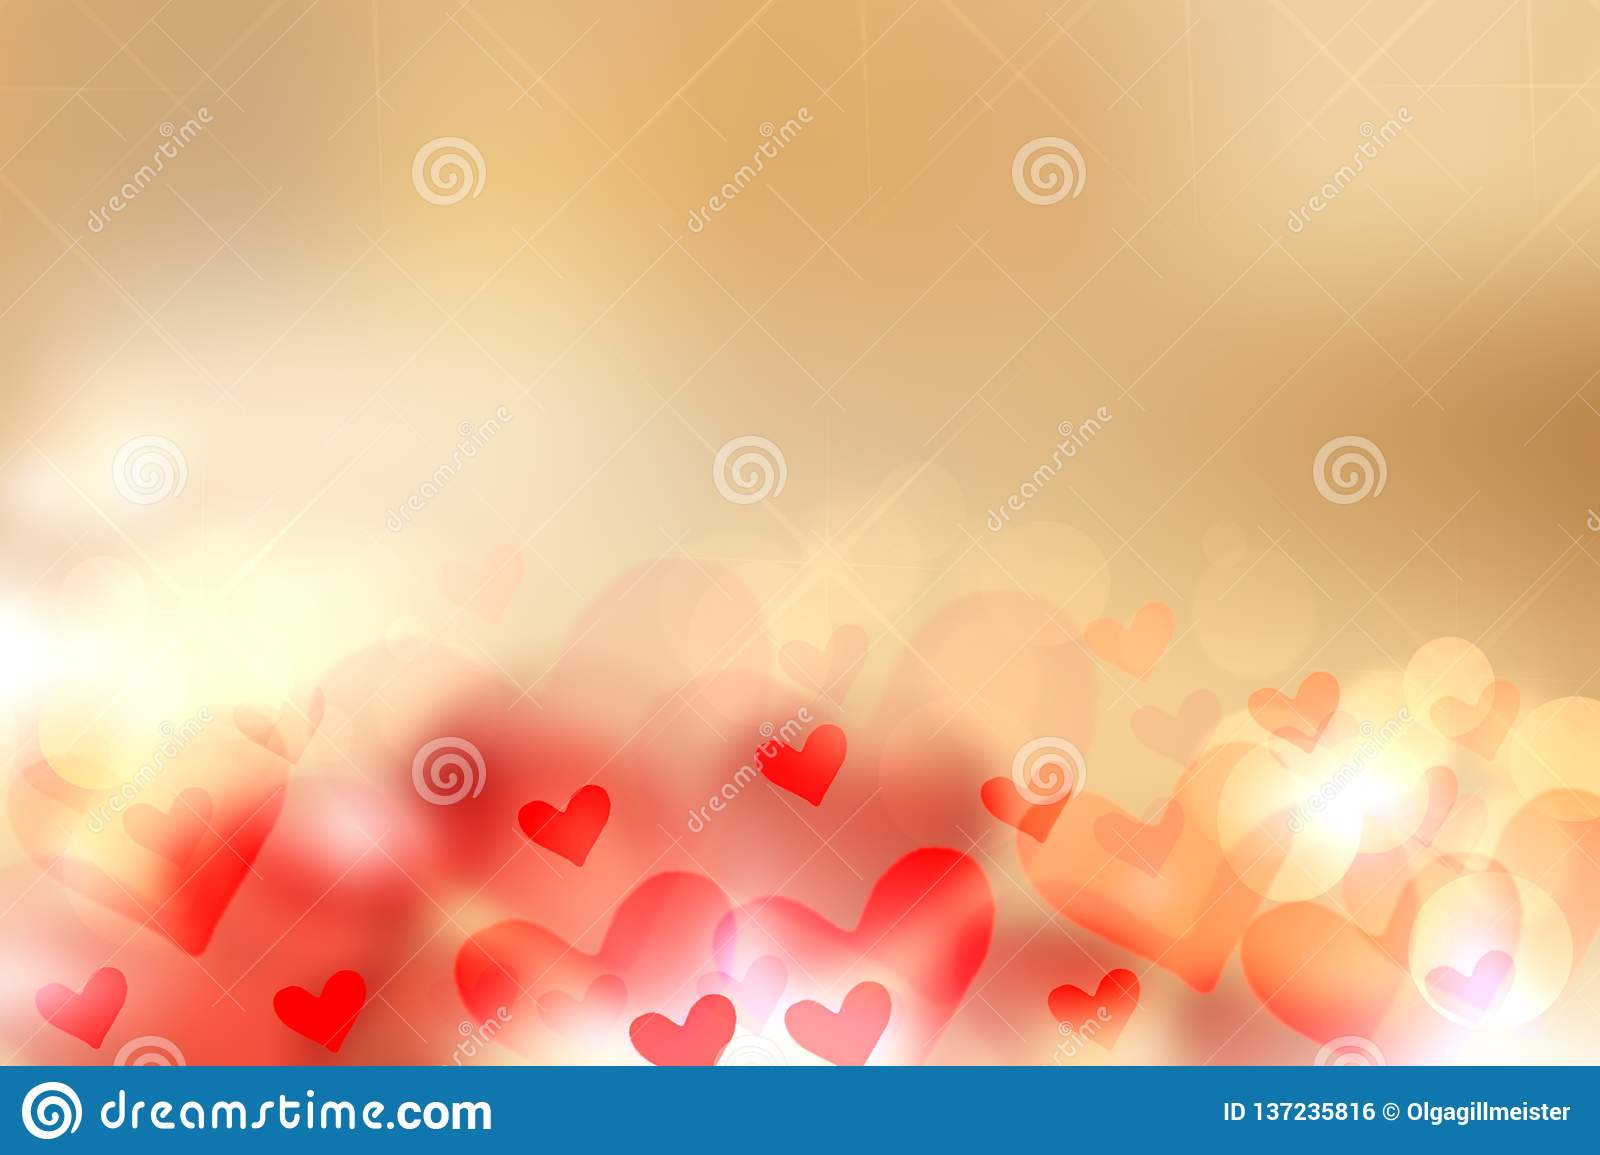 Happy Valentines or wedding day background. Abstract love romantic holiday golden background with red and golden hearts. Template